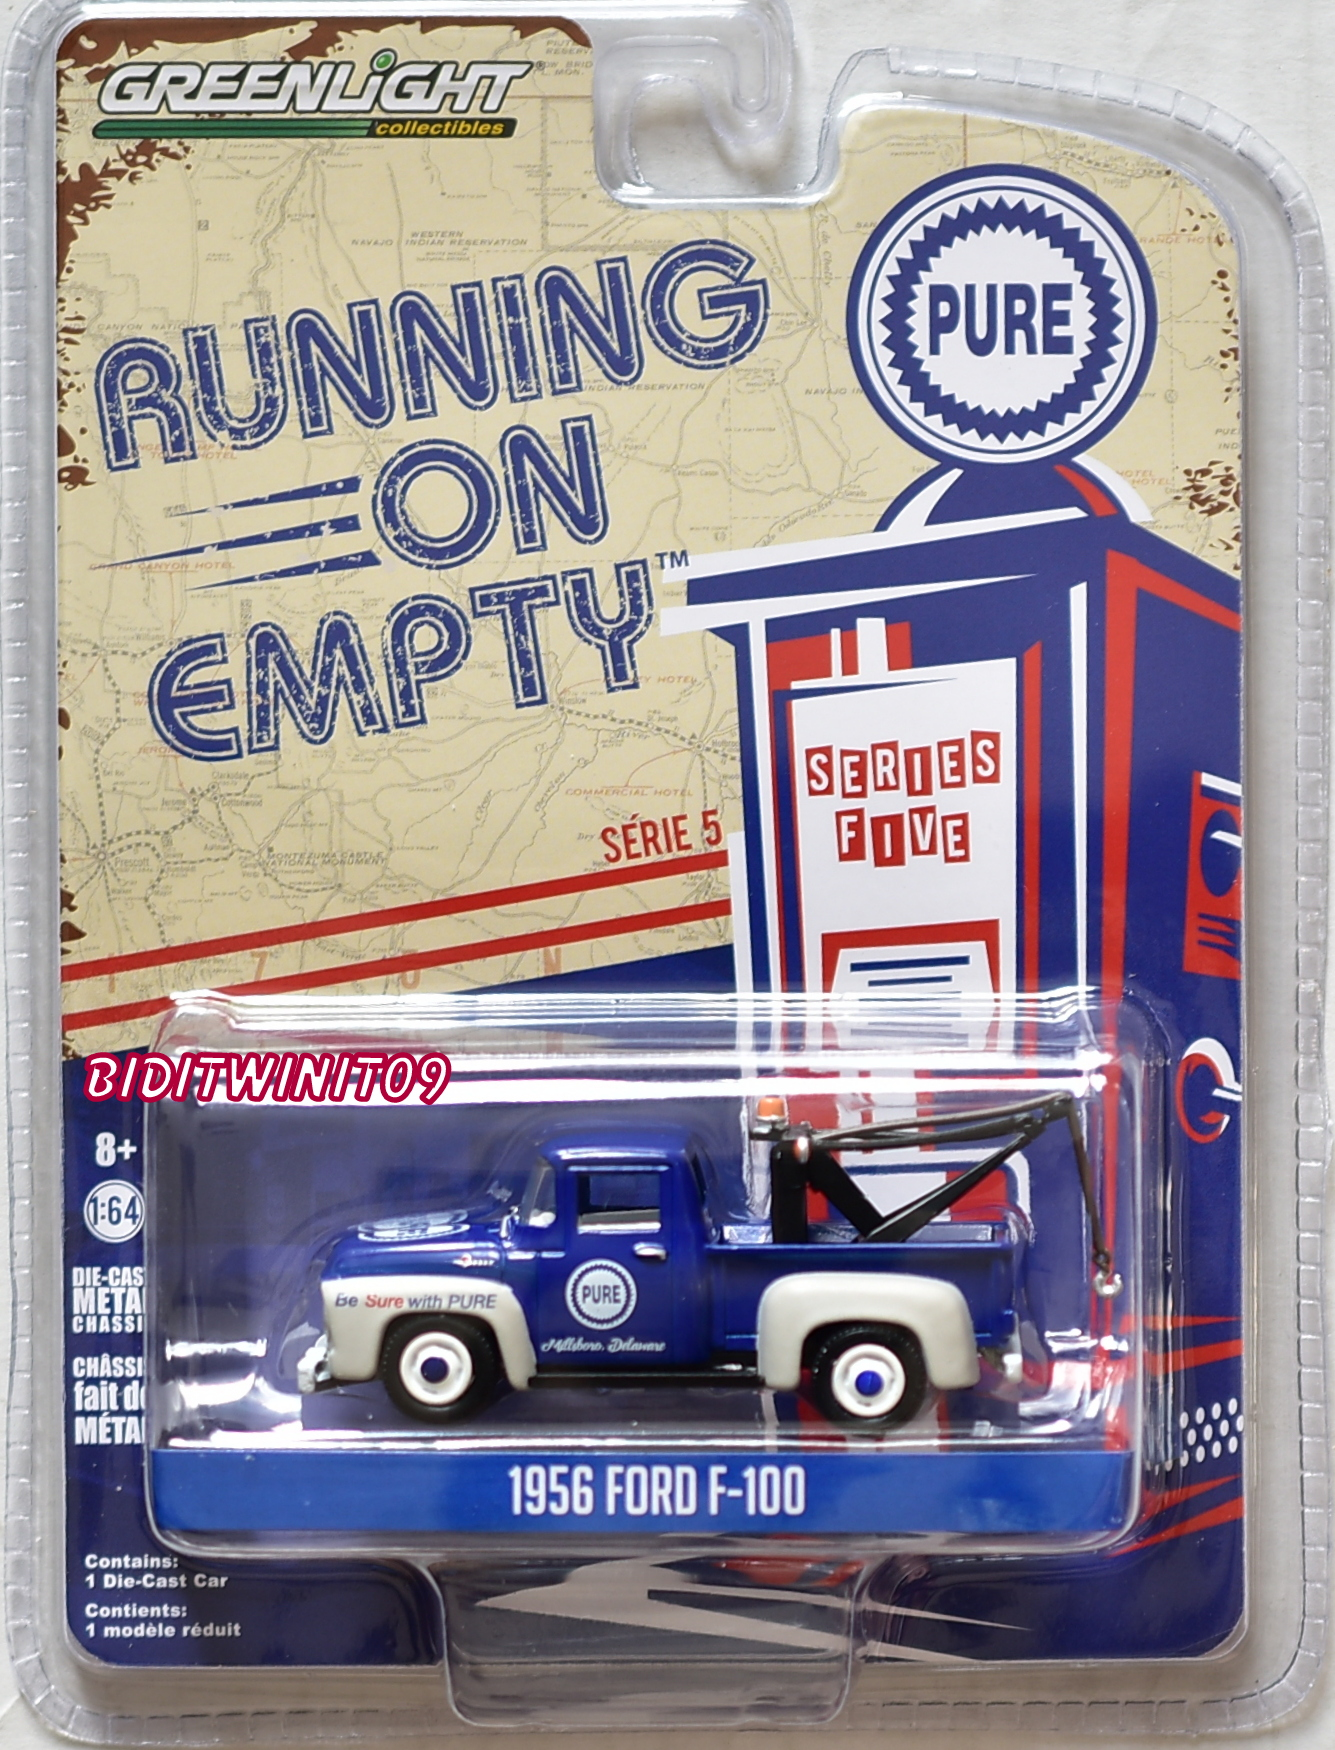 GREENLIGHT 2018 RUNNING ON EMPTY SERIES 5 1956 FORD F-100 BLUE